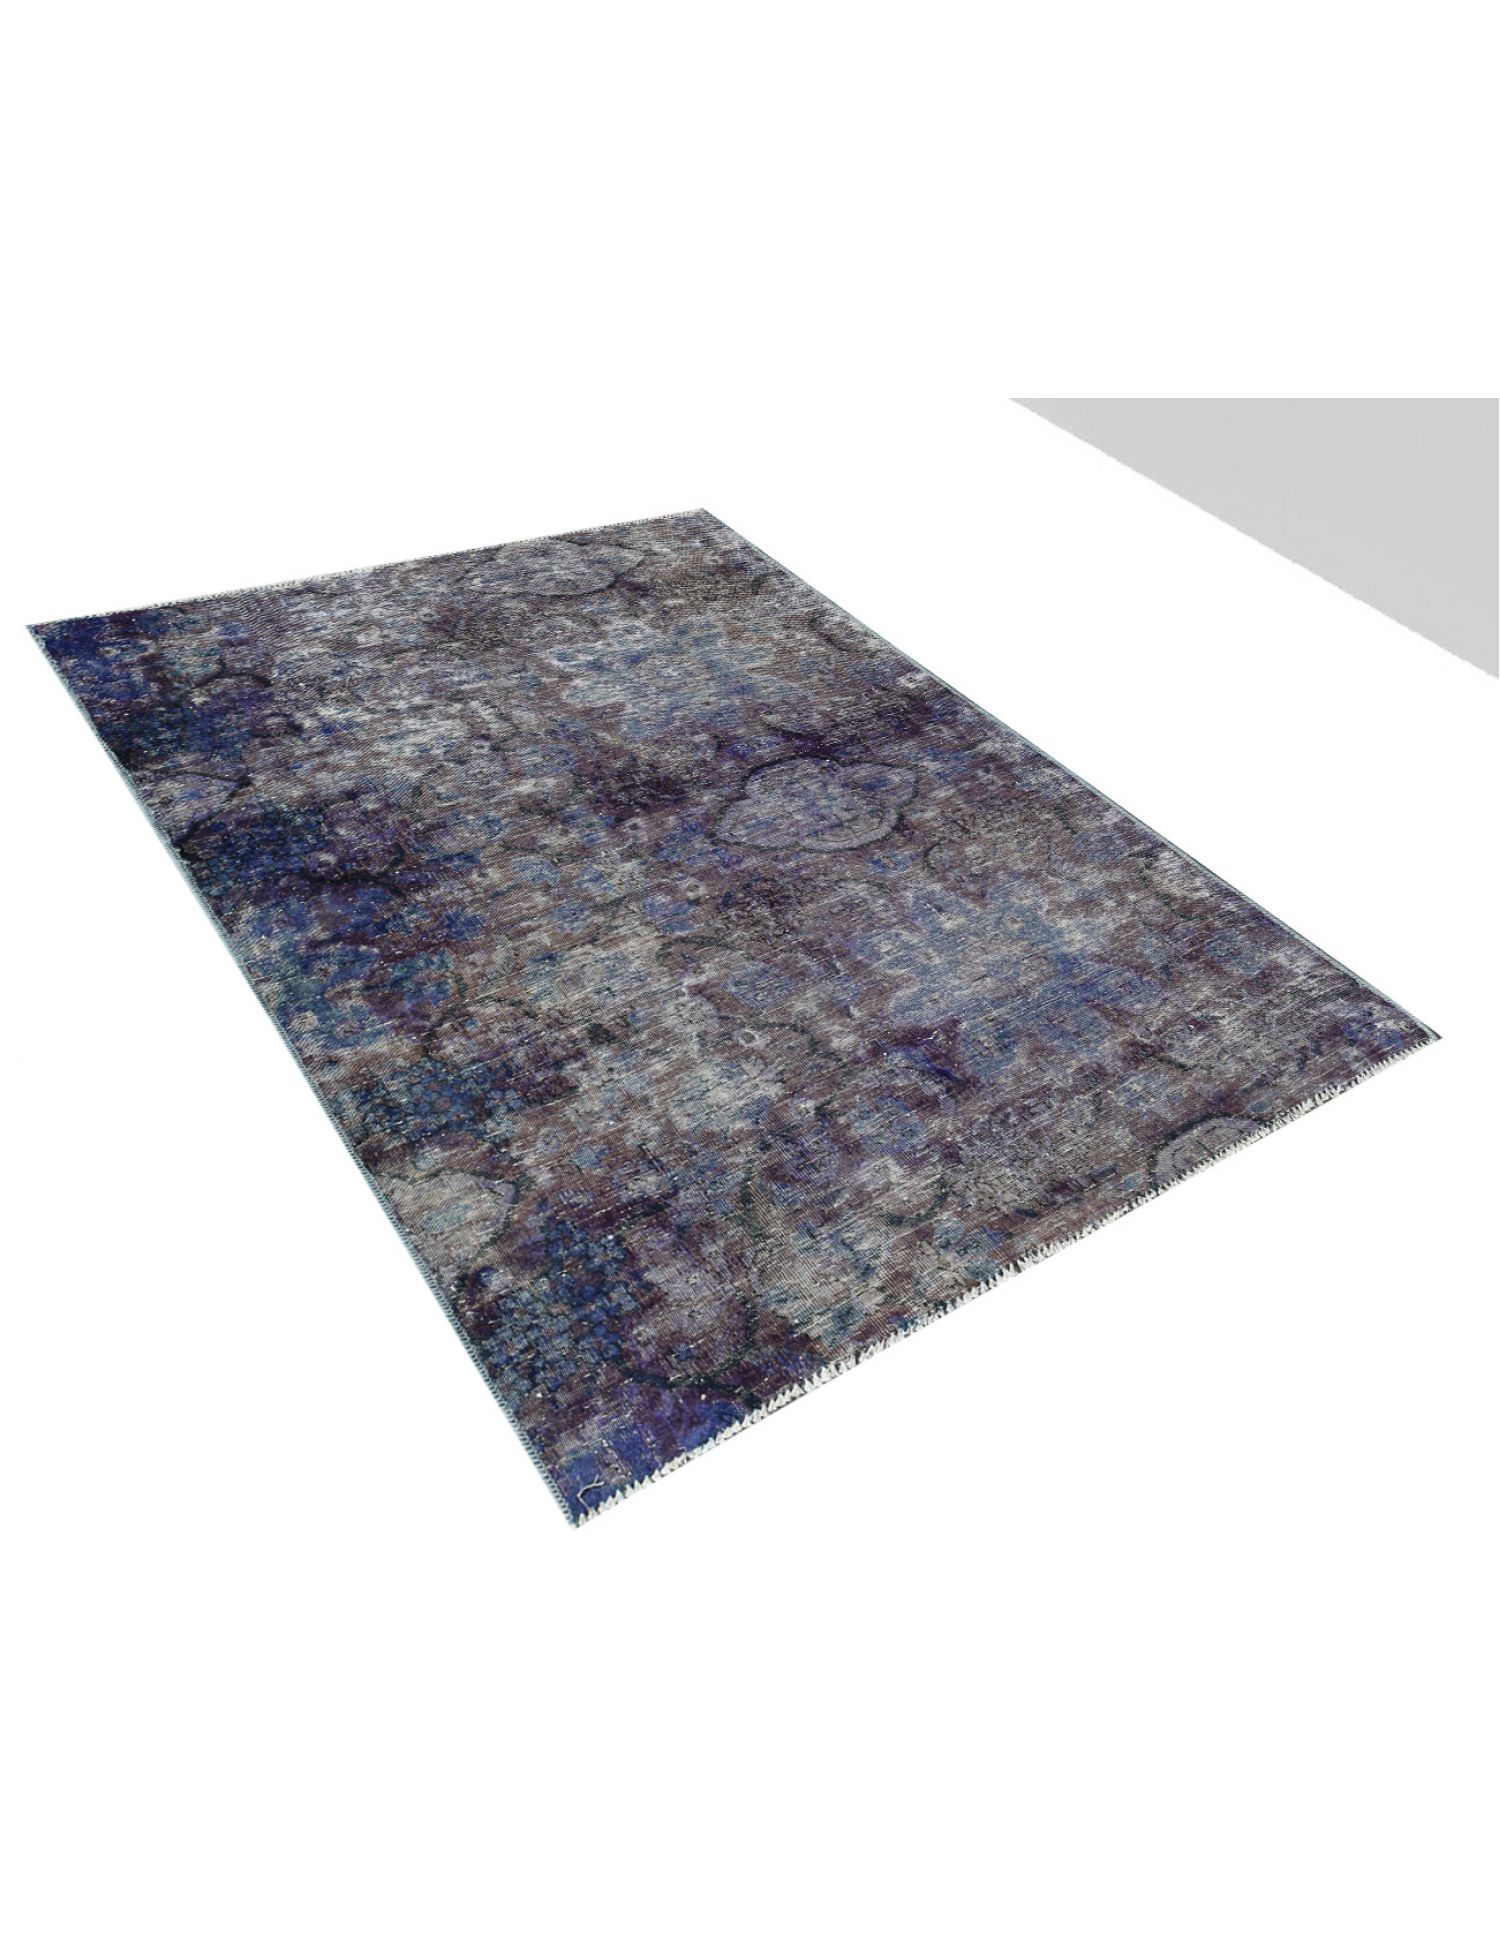 Vintage Carpet  blue <br/>164 x 132 cm